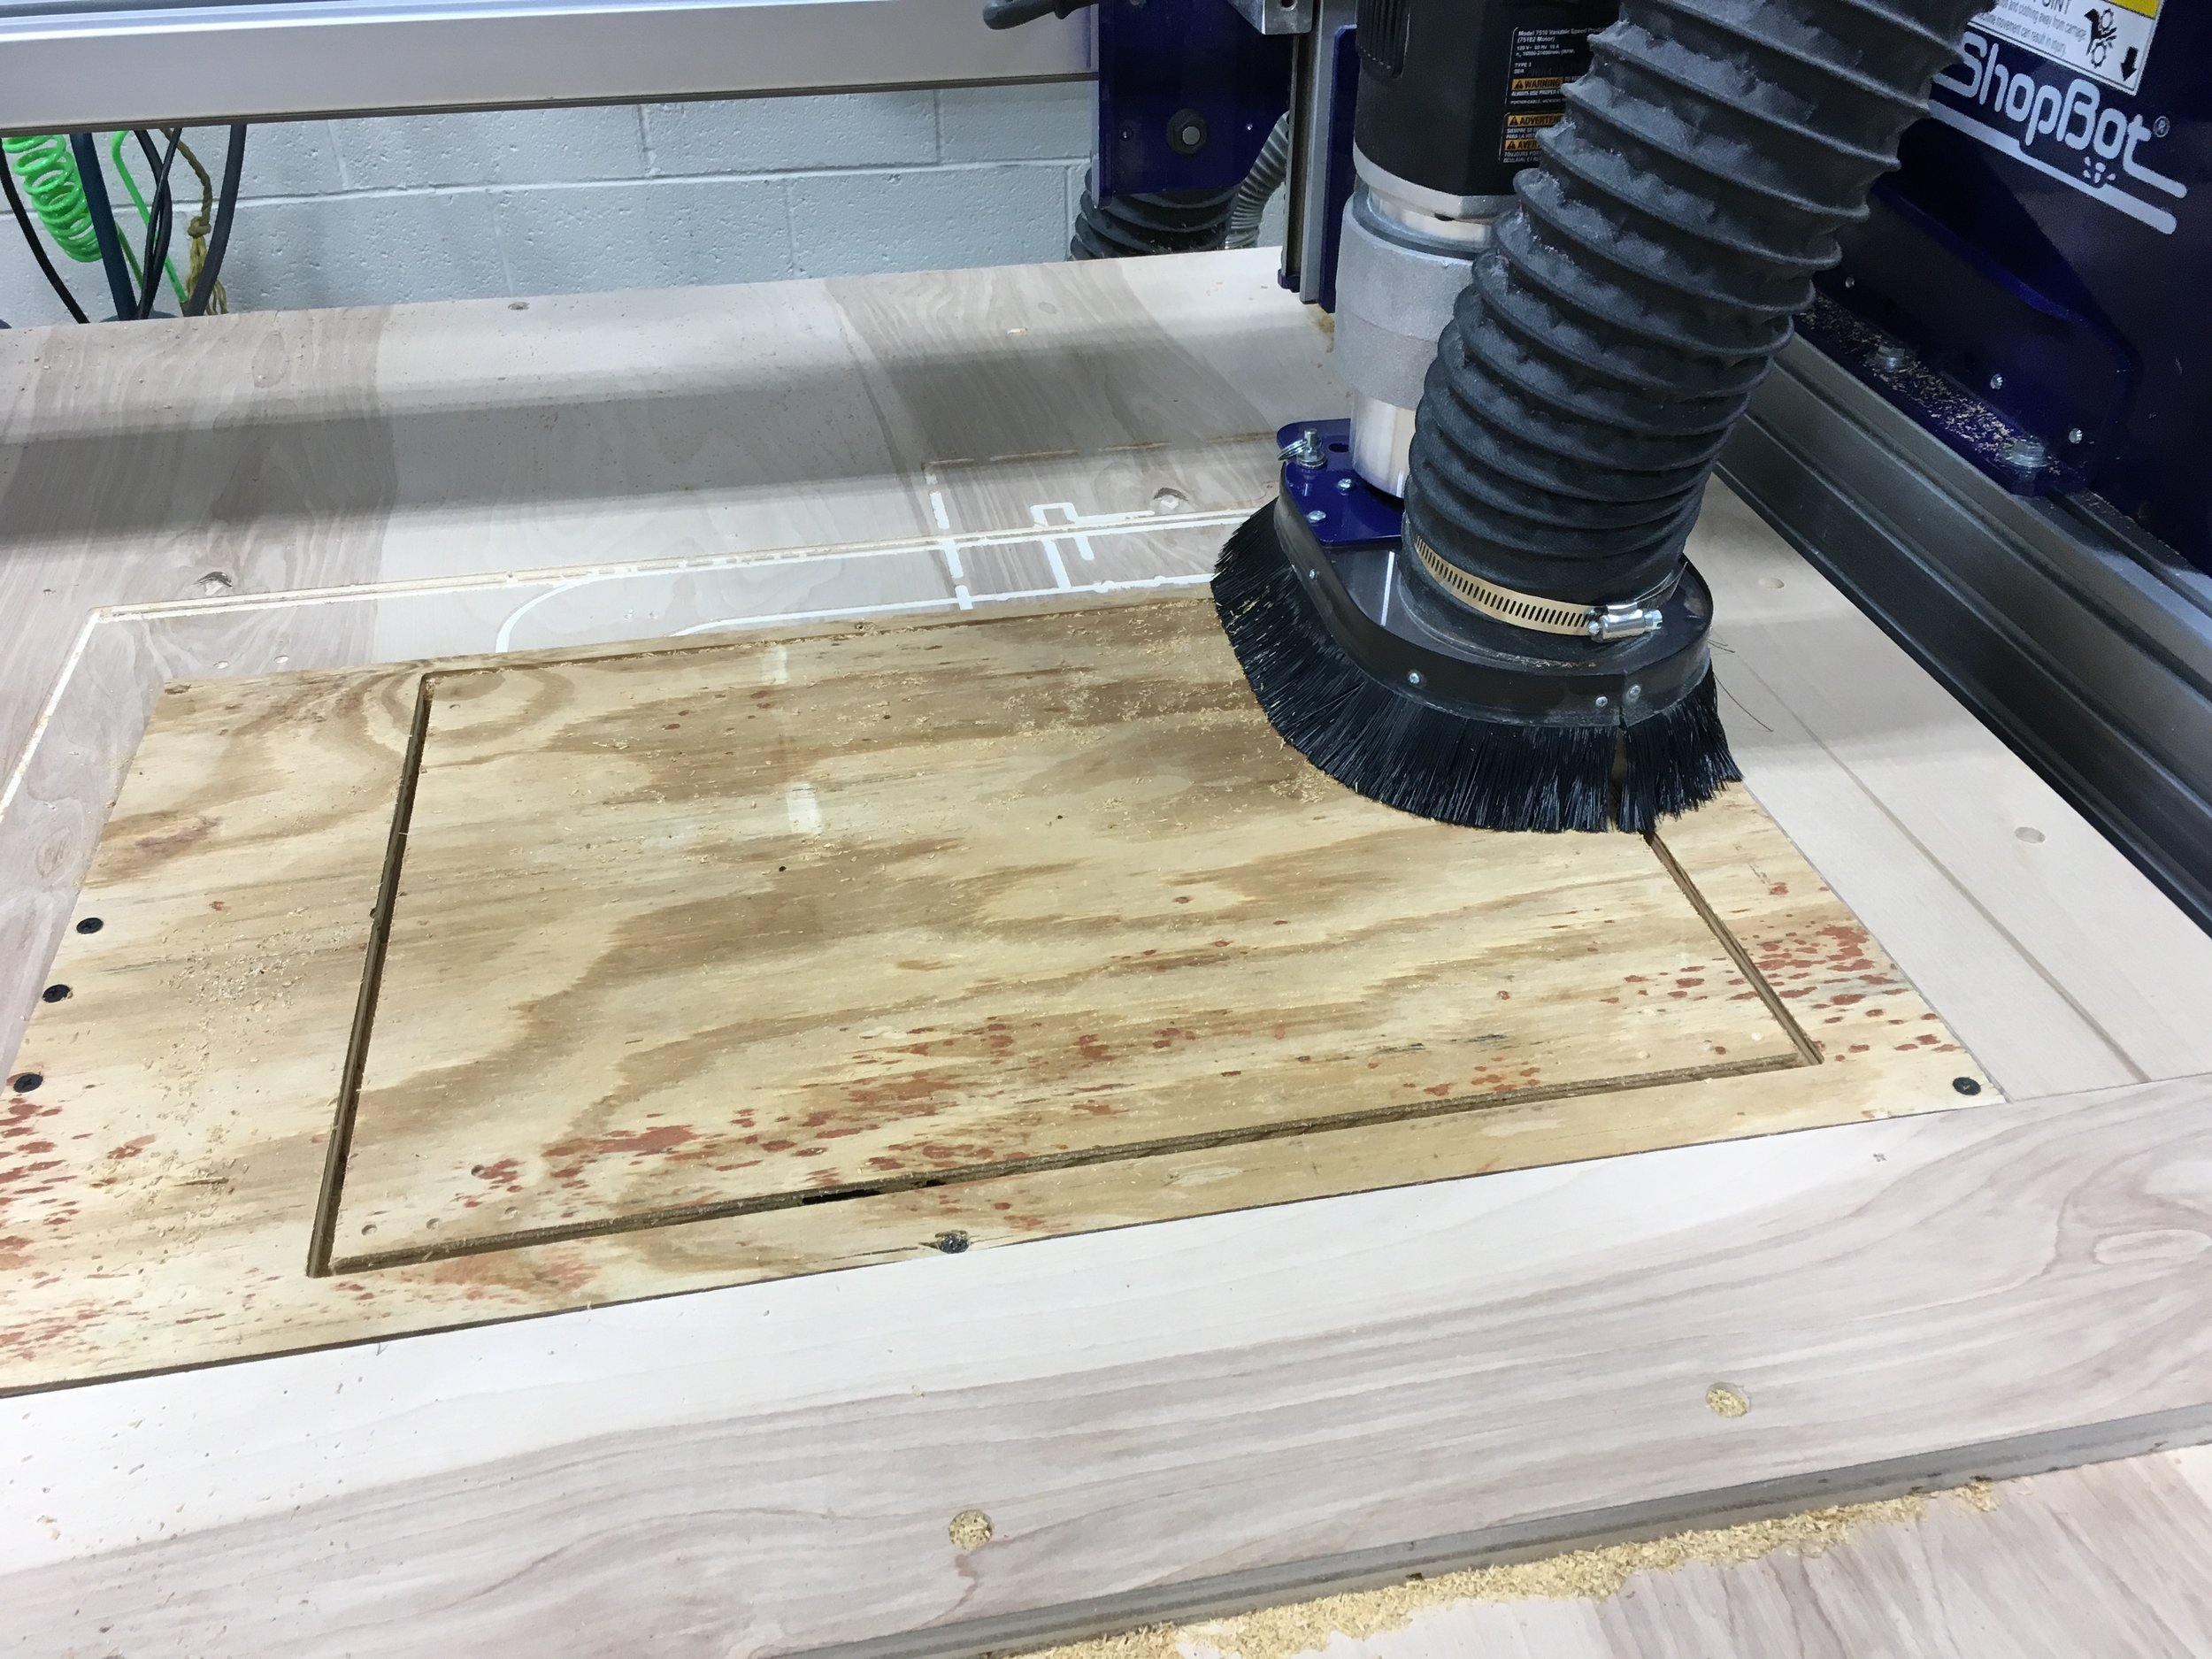 Cutting the pieces of the foot bath on the ShopBot.